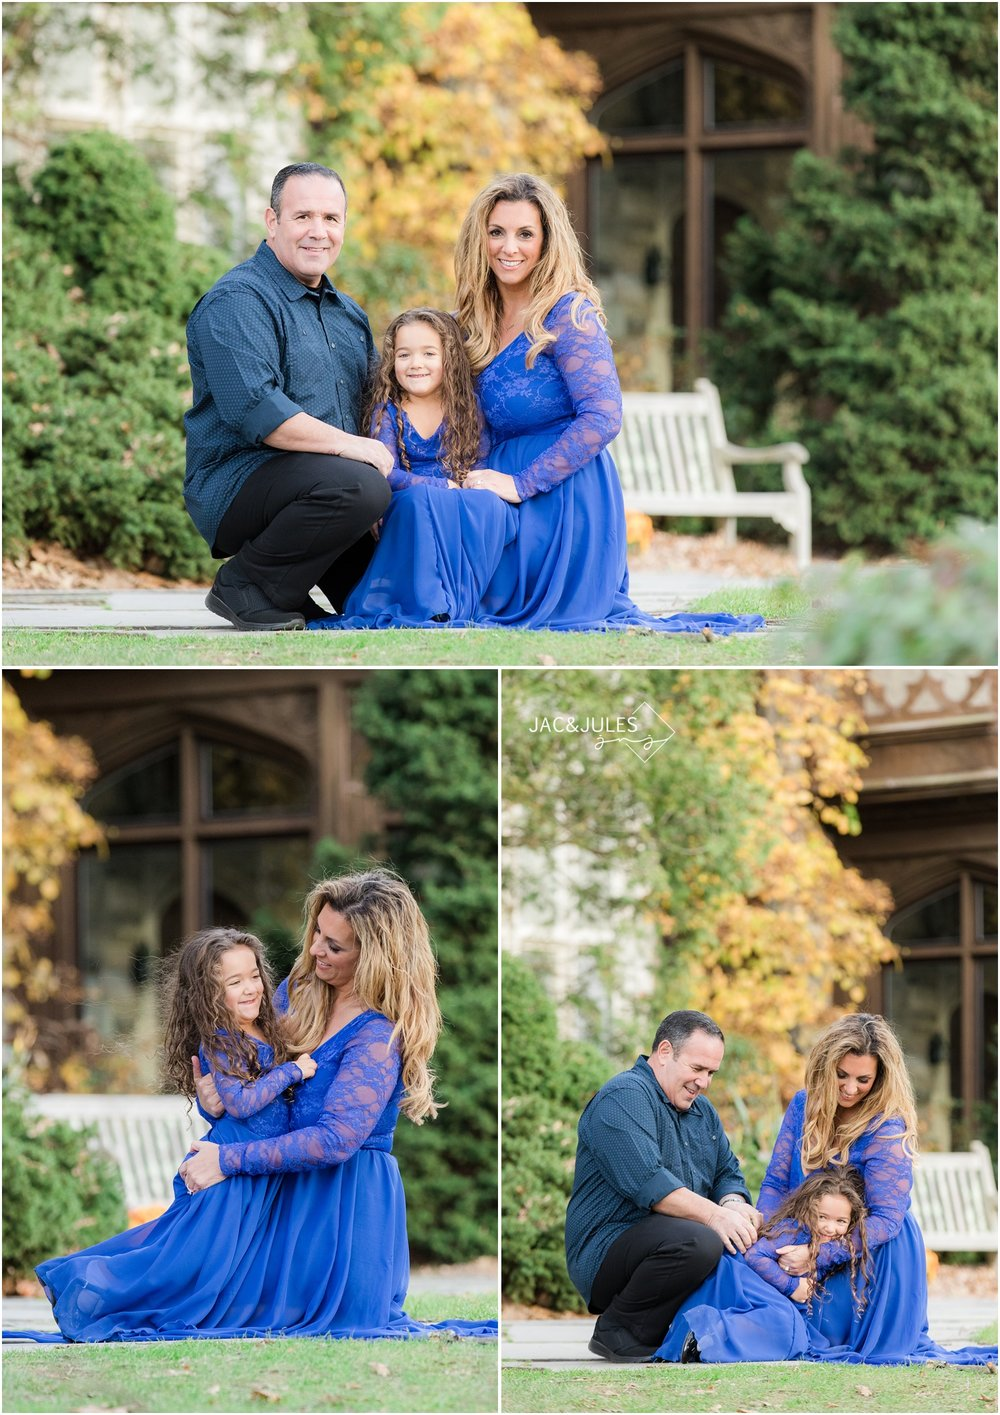 Fun whimsical Family photos in front of the castle at Skylands Manor in Ringwood, NJ.